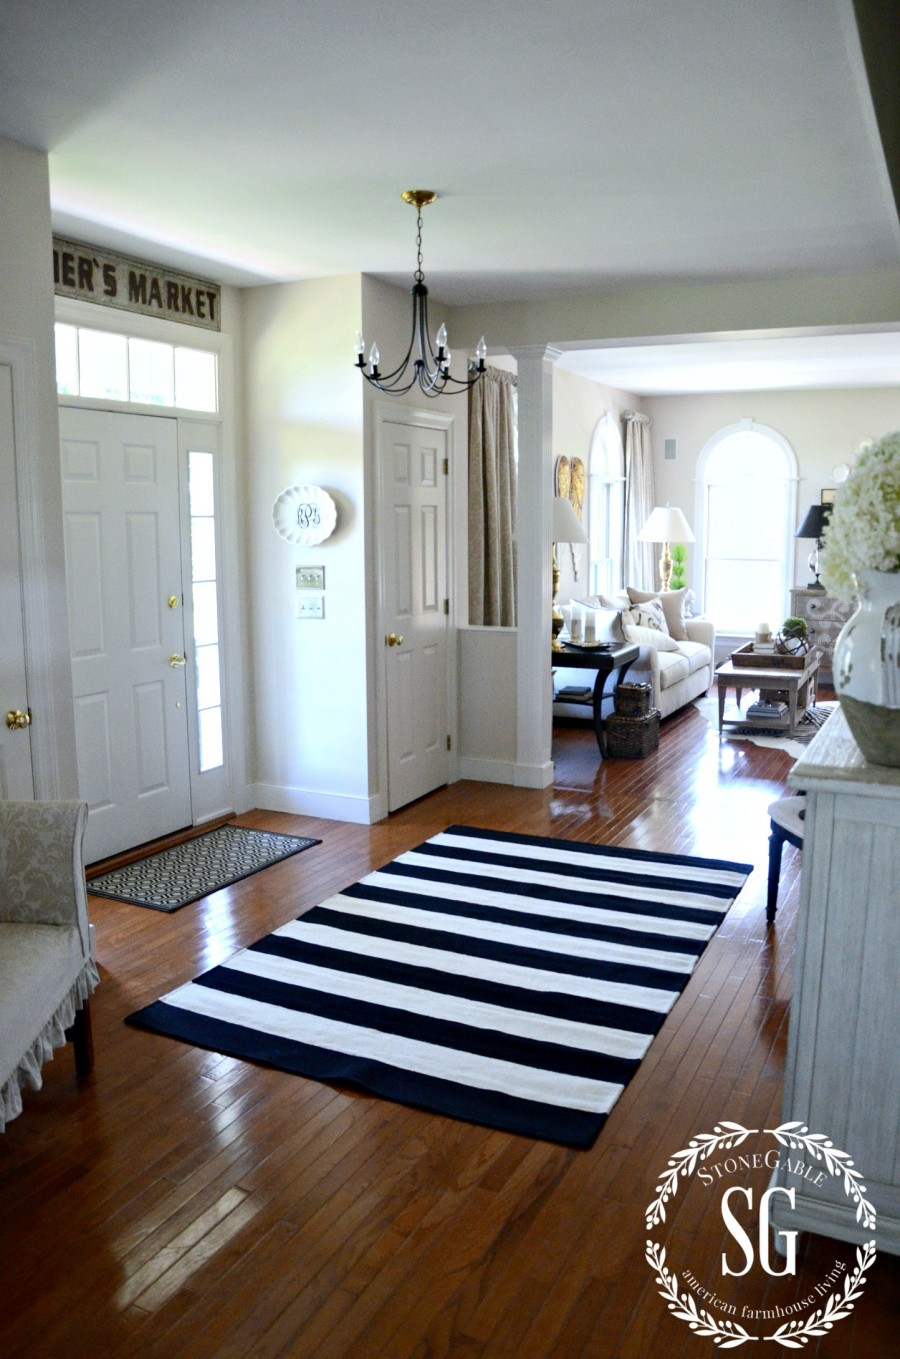 UPDATING THE FOYER WITH A RUG-modern farmhouse-stonegableblog.com